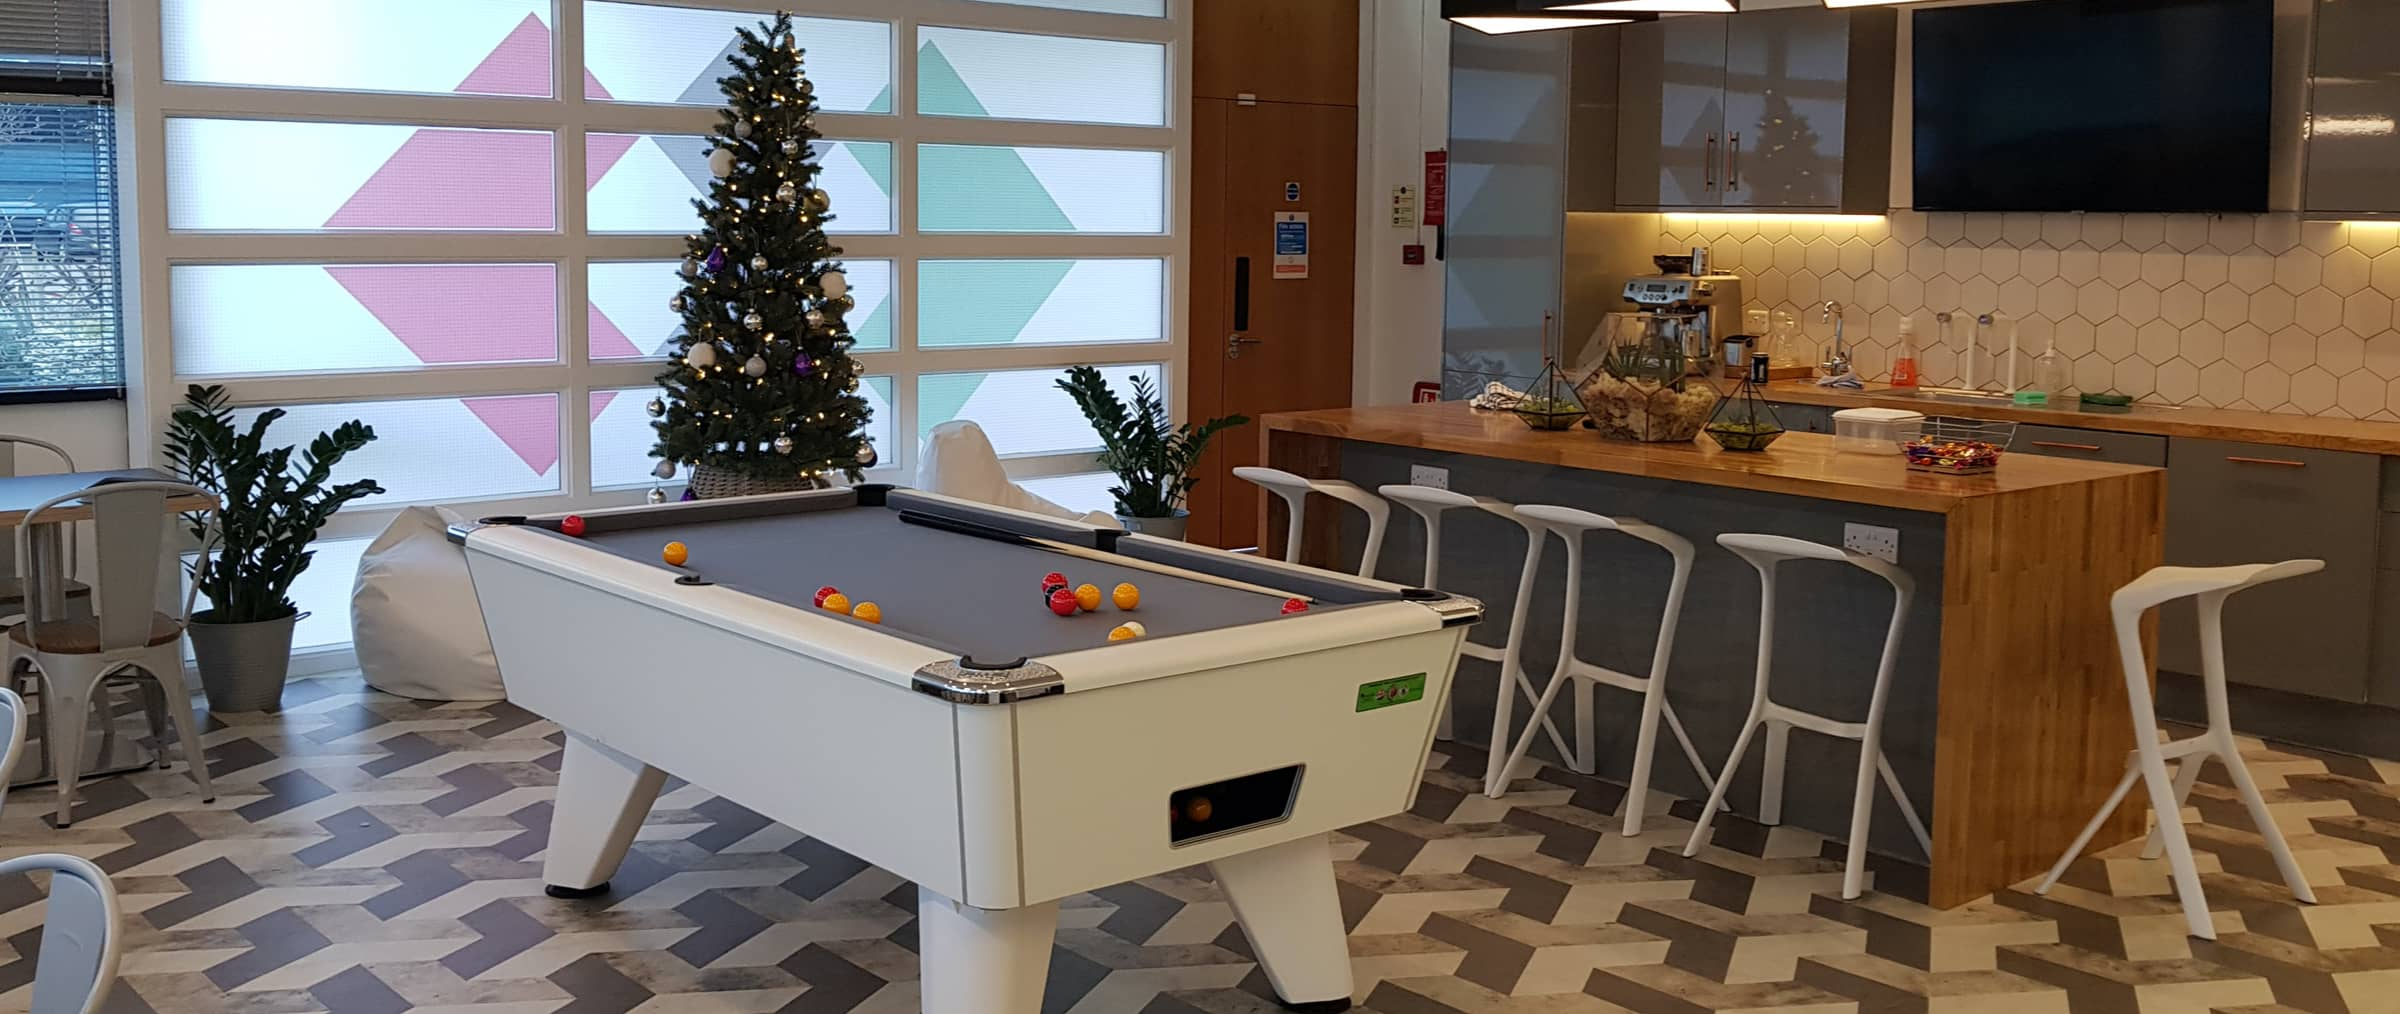 office-pool-table@2x